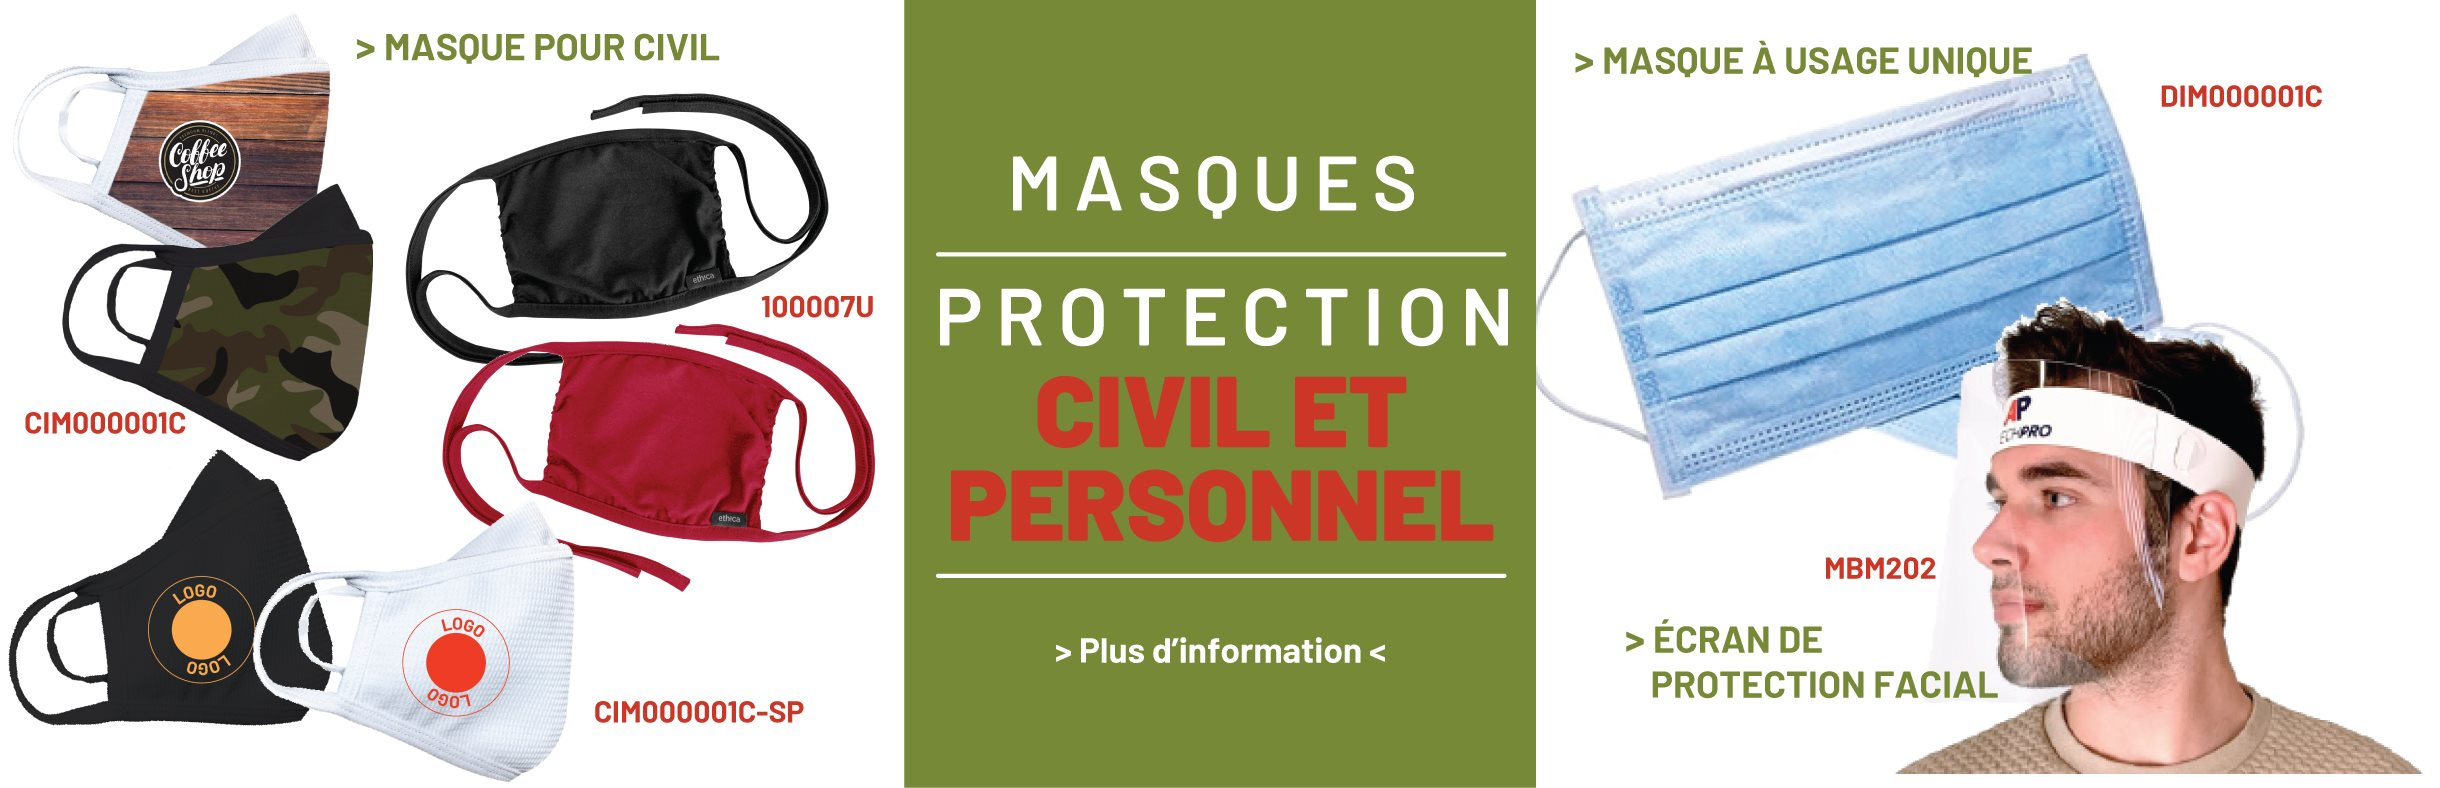 banniere-protection-fr-01